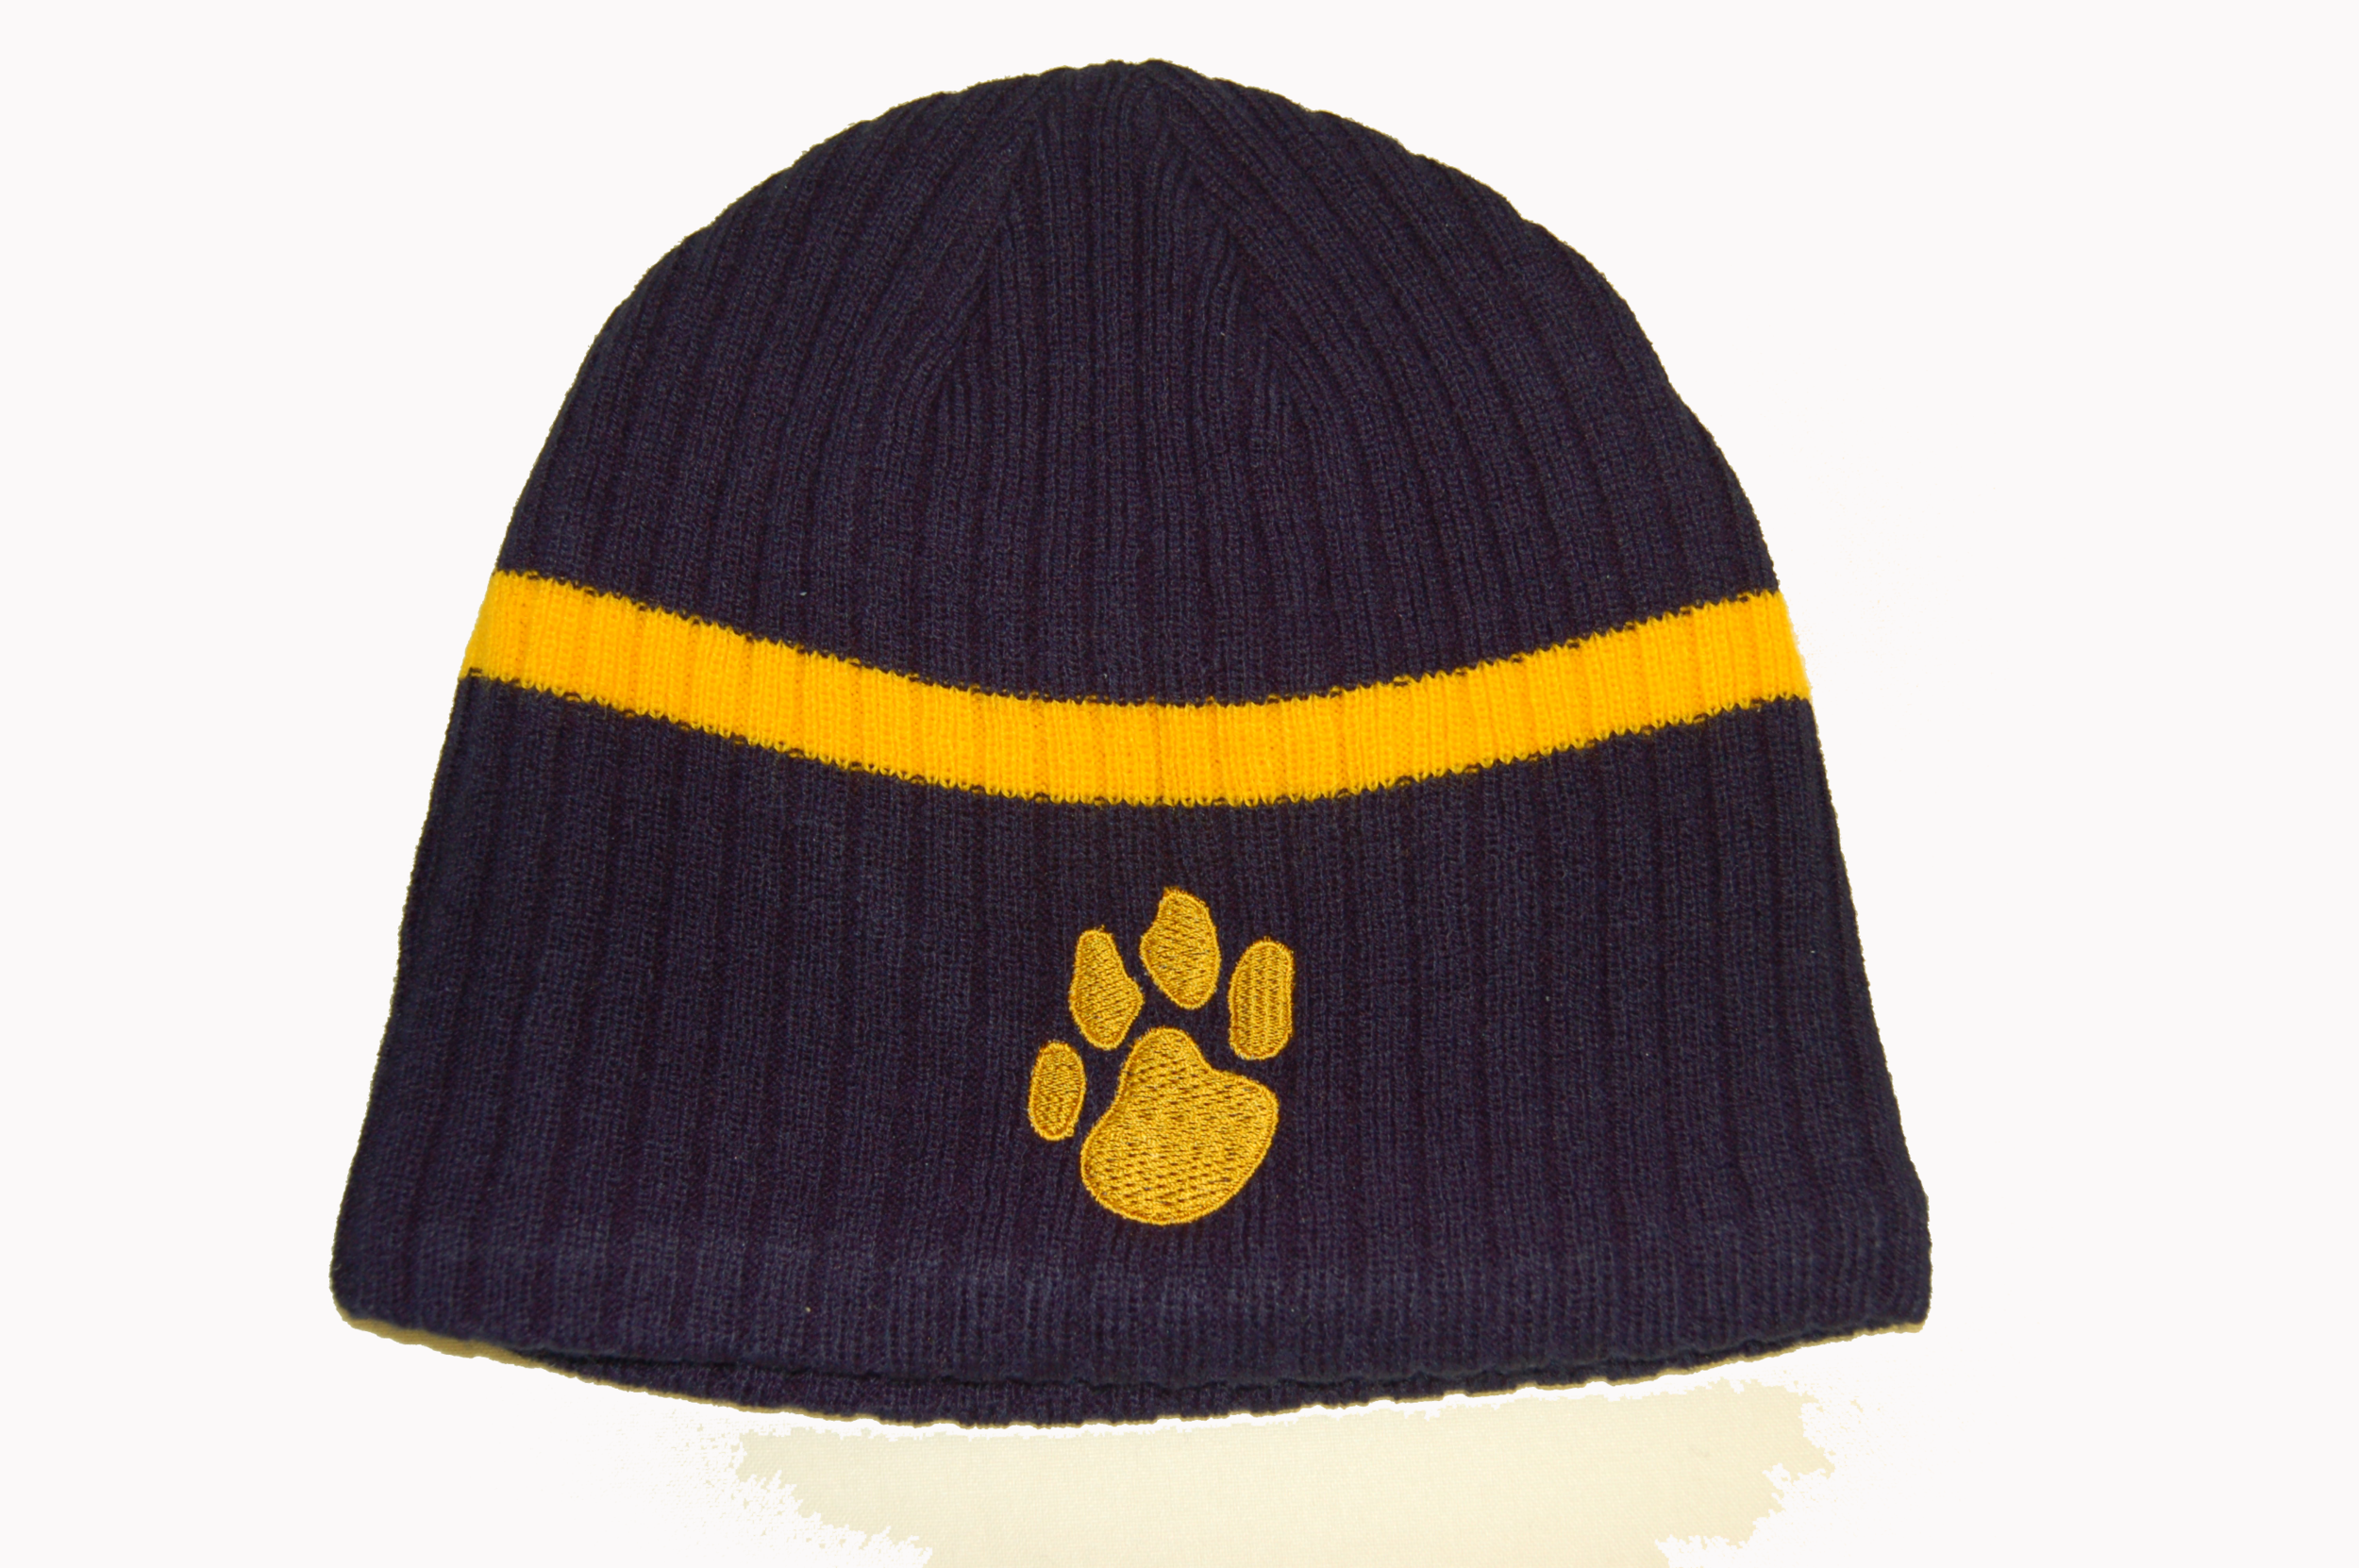 Navy & Gold beanie with embroidered paw.